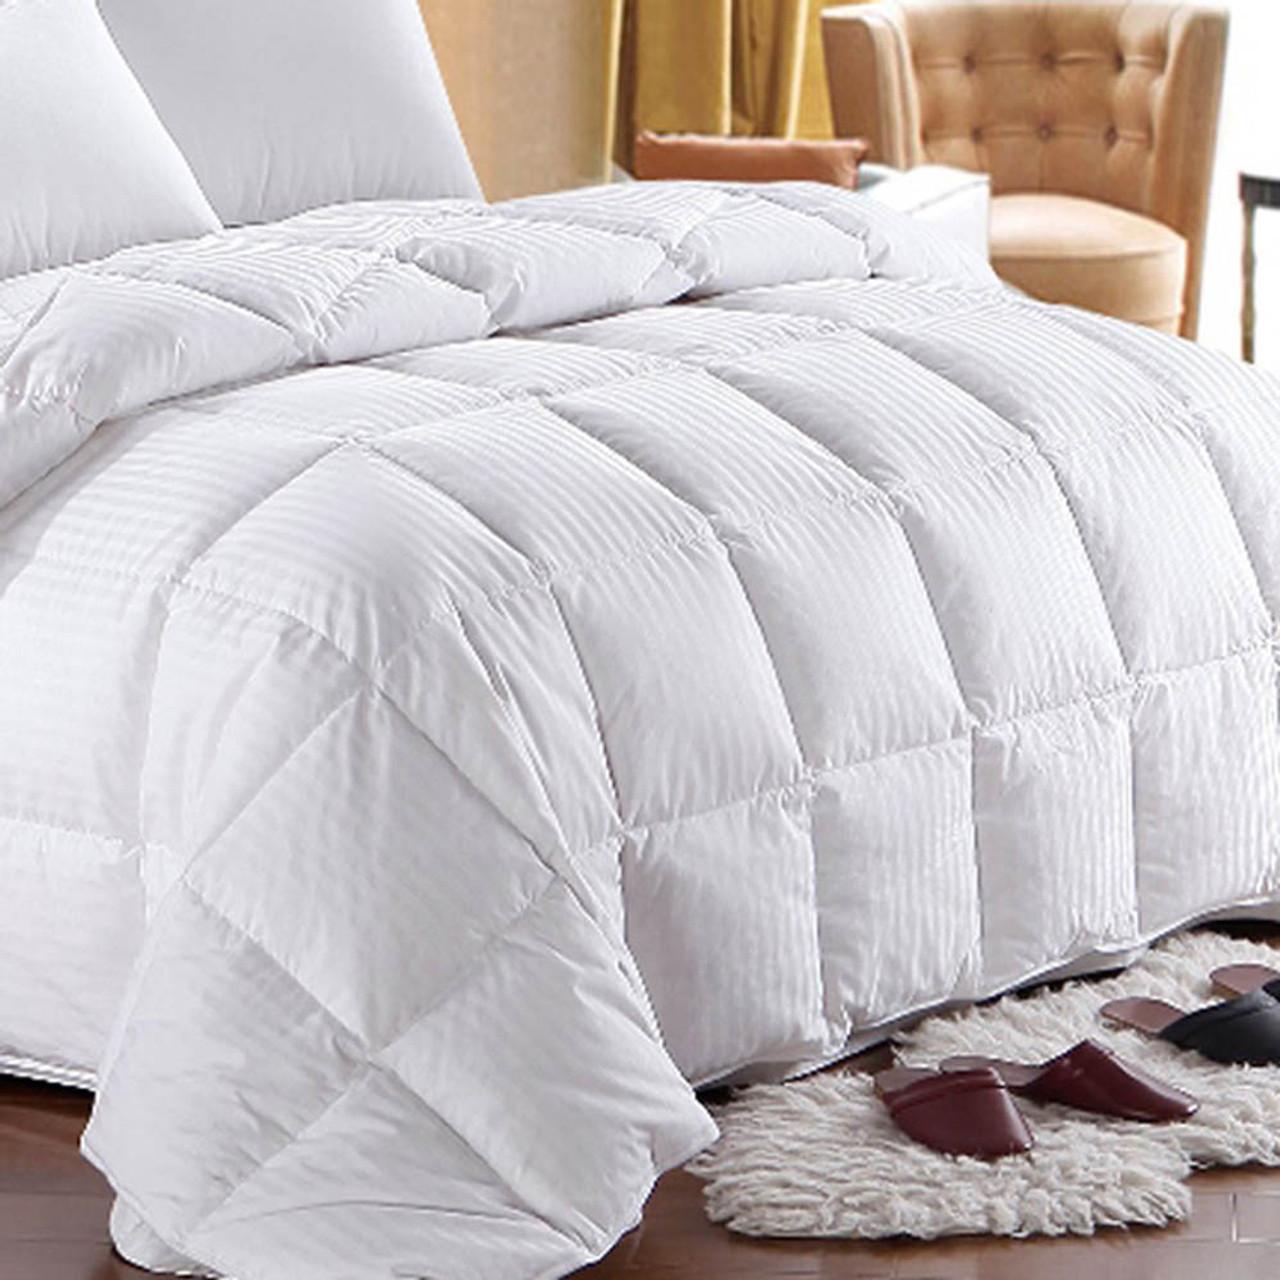 white whites ridge queen goose comforter duvet down comforters full inserts feather p blue and